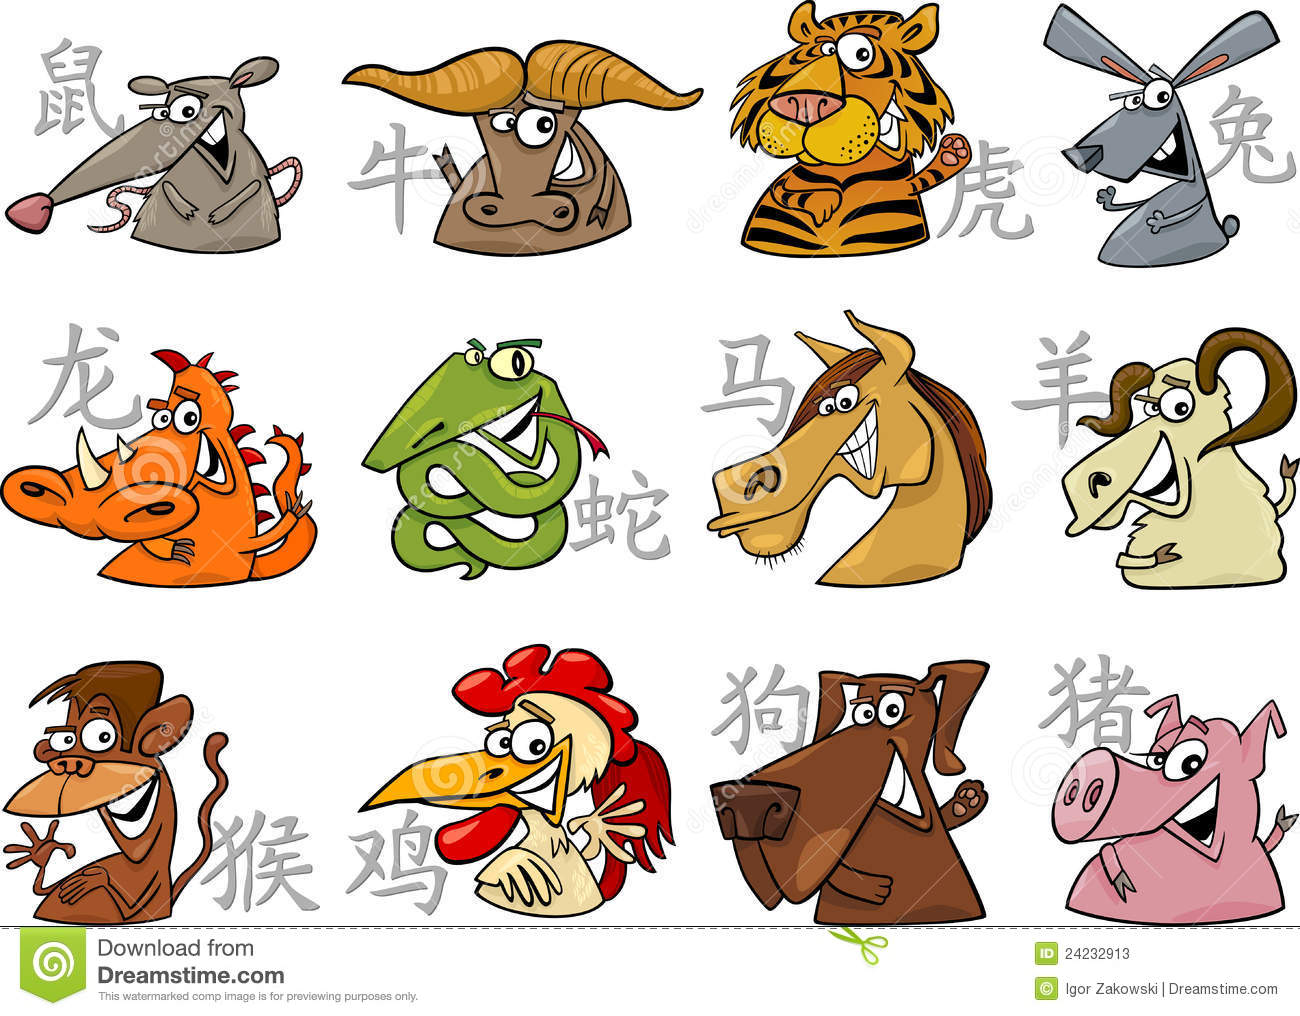 Chinese Zodiac Signs Stock Photos - Image: 24232913